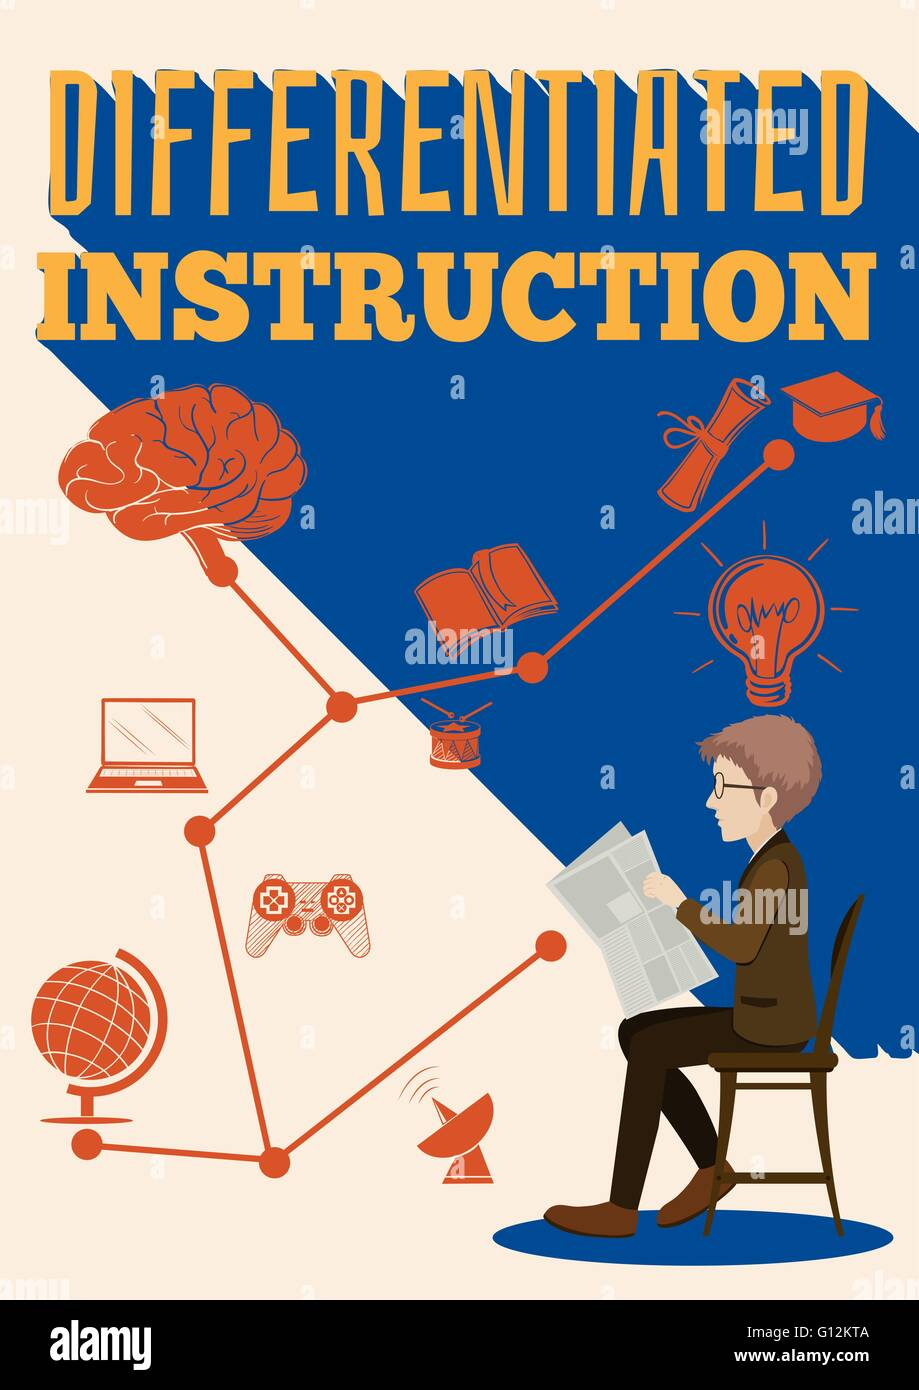 Differentiated instruction sign with a man illustration - Stock Image